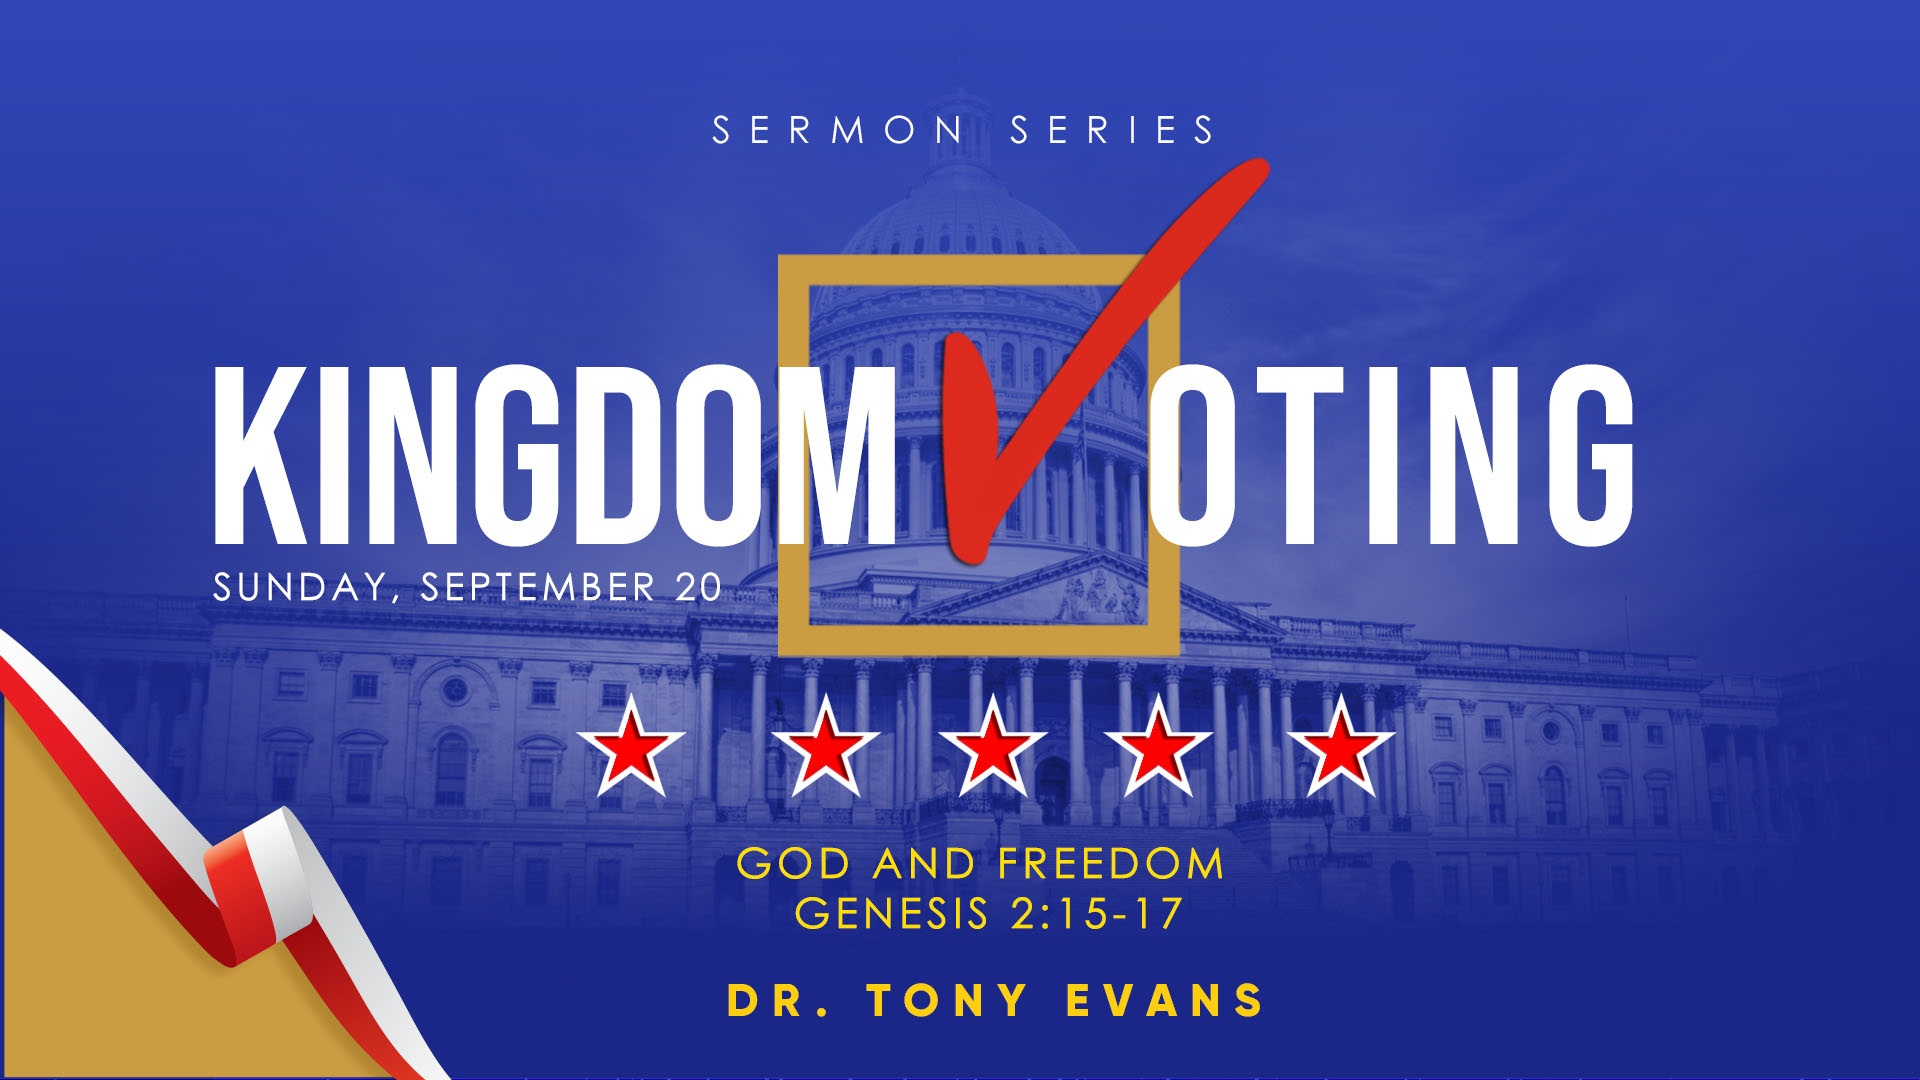 God and Freedom by Dr. Tony Evans - Kingdom Voting Series